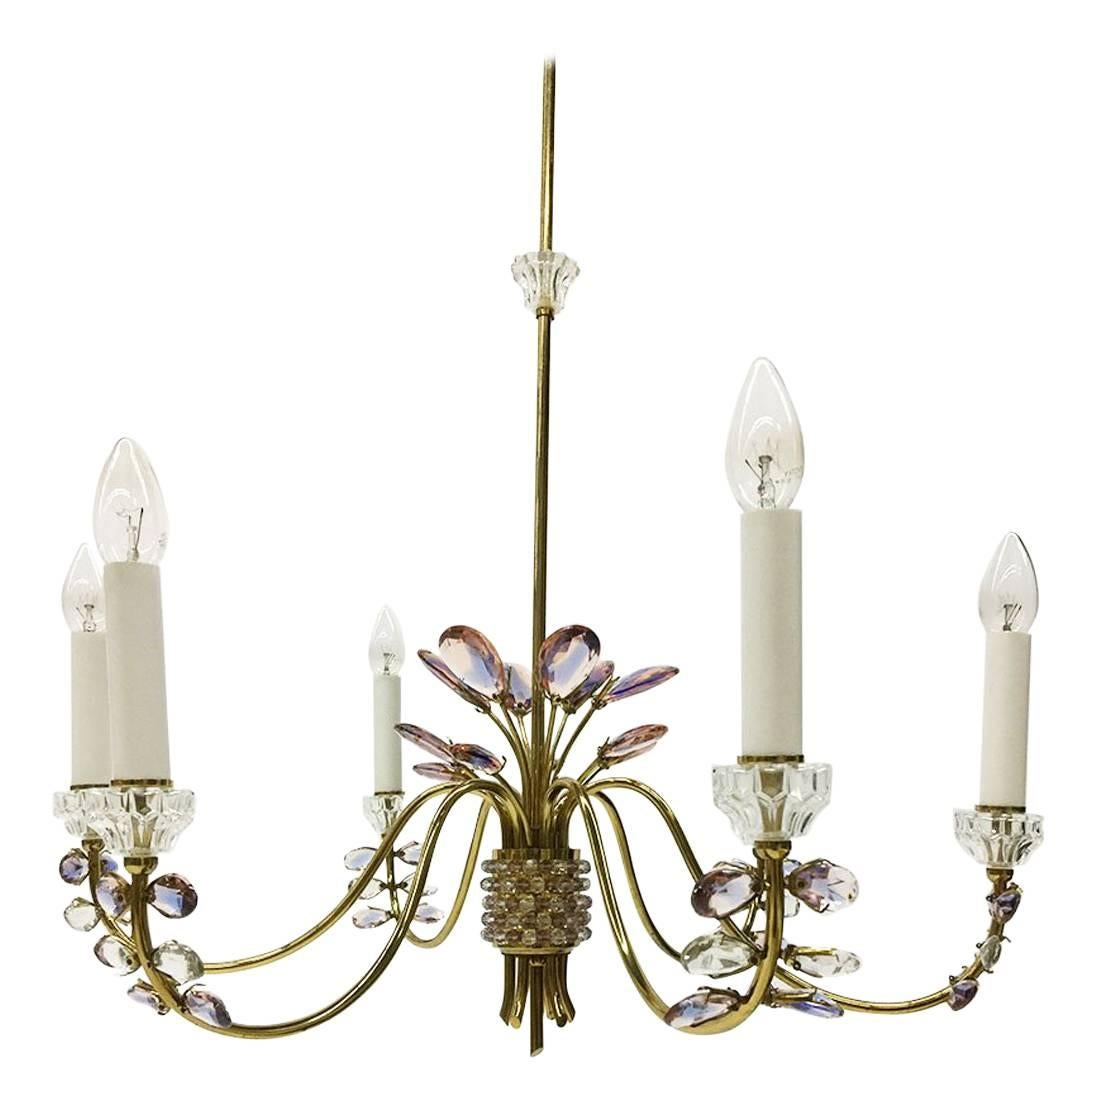 Palwa, Germany Chandelier, Brass and Faceted Crystals, 1970s